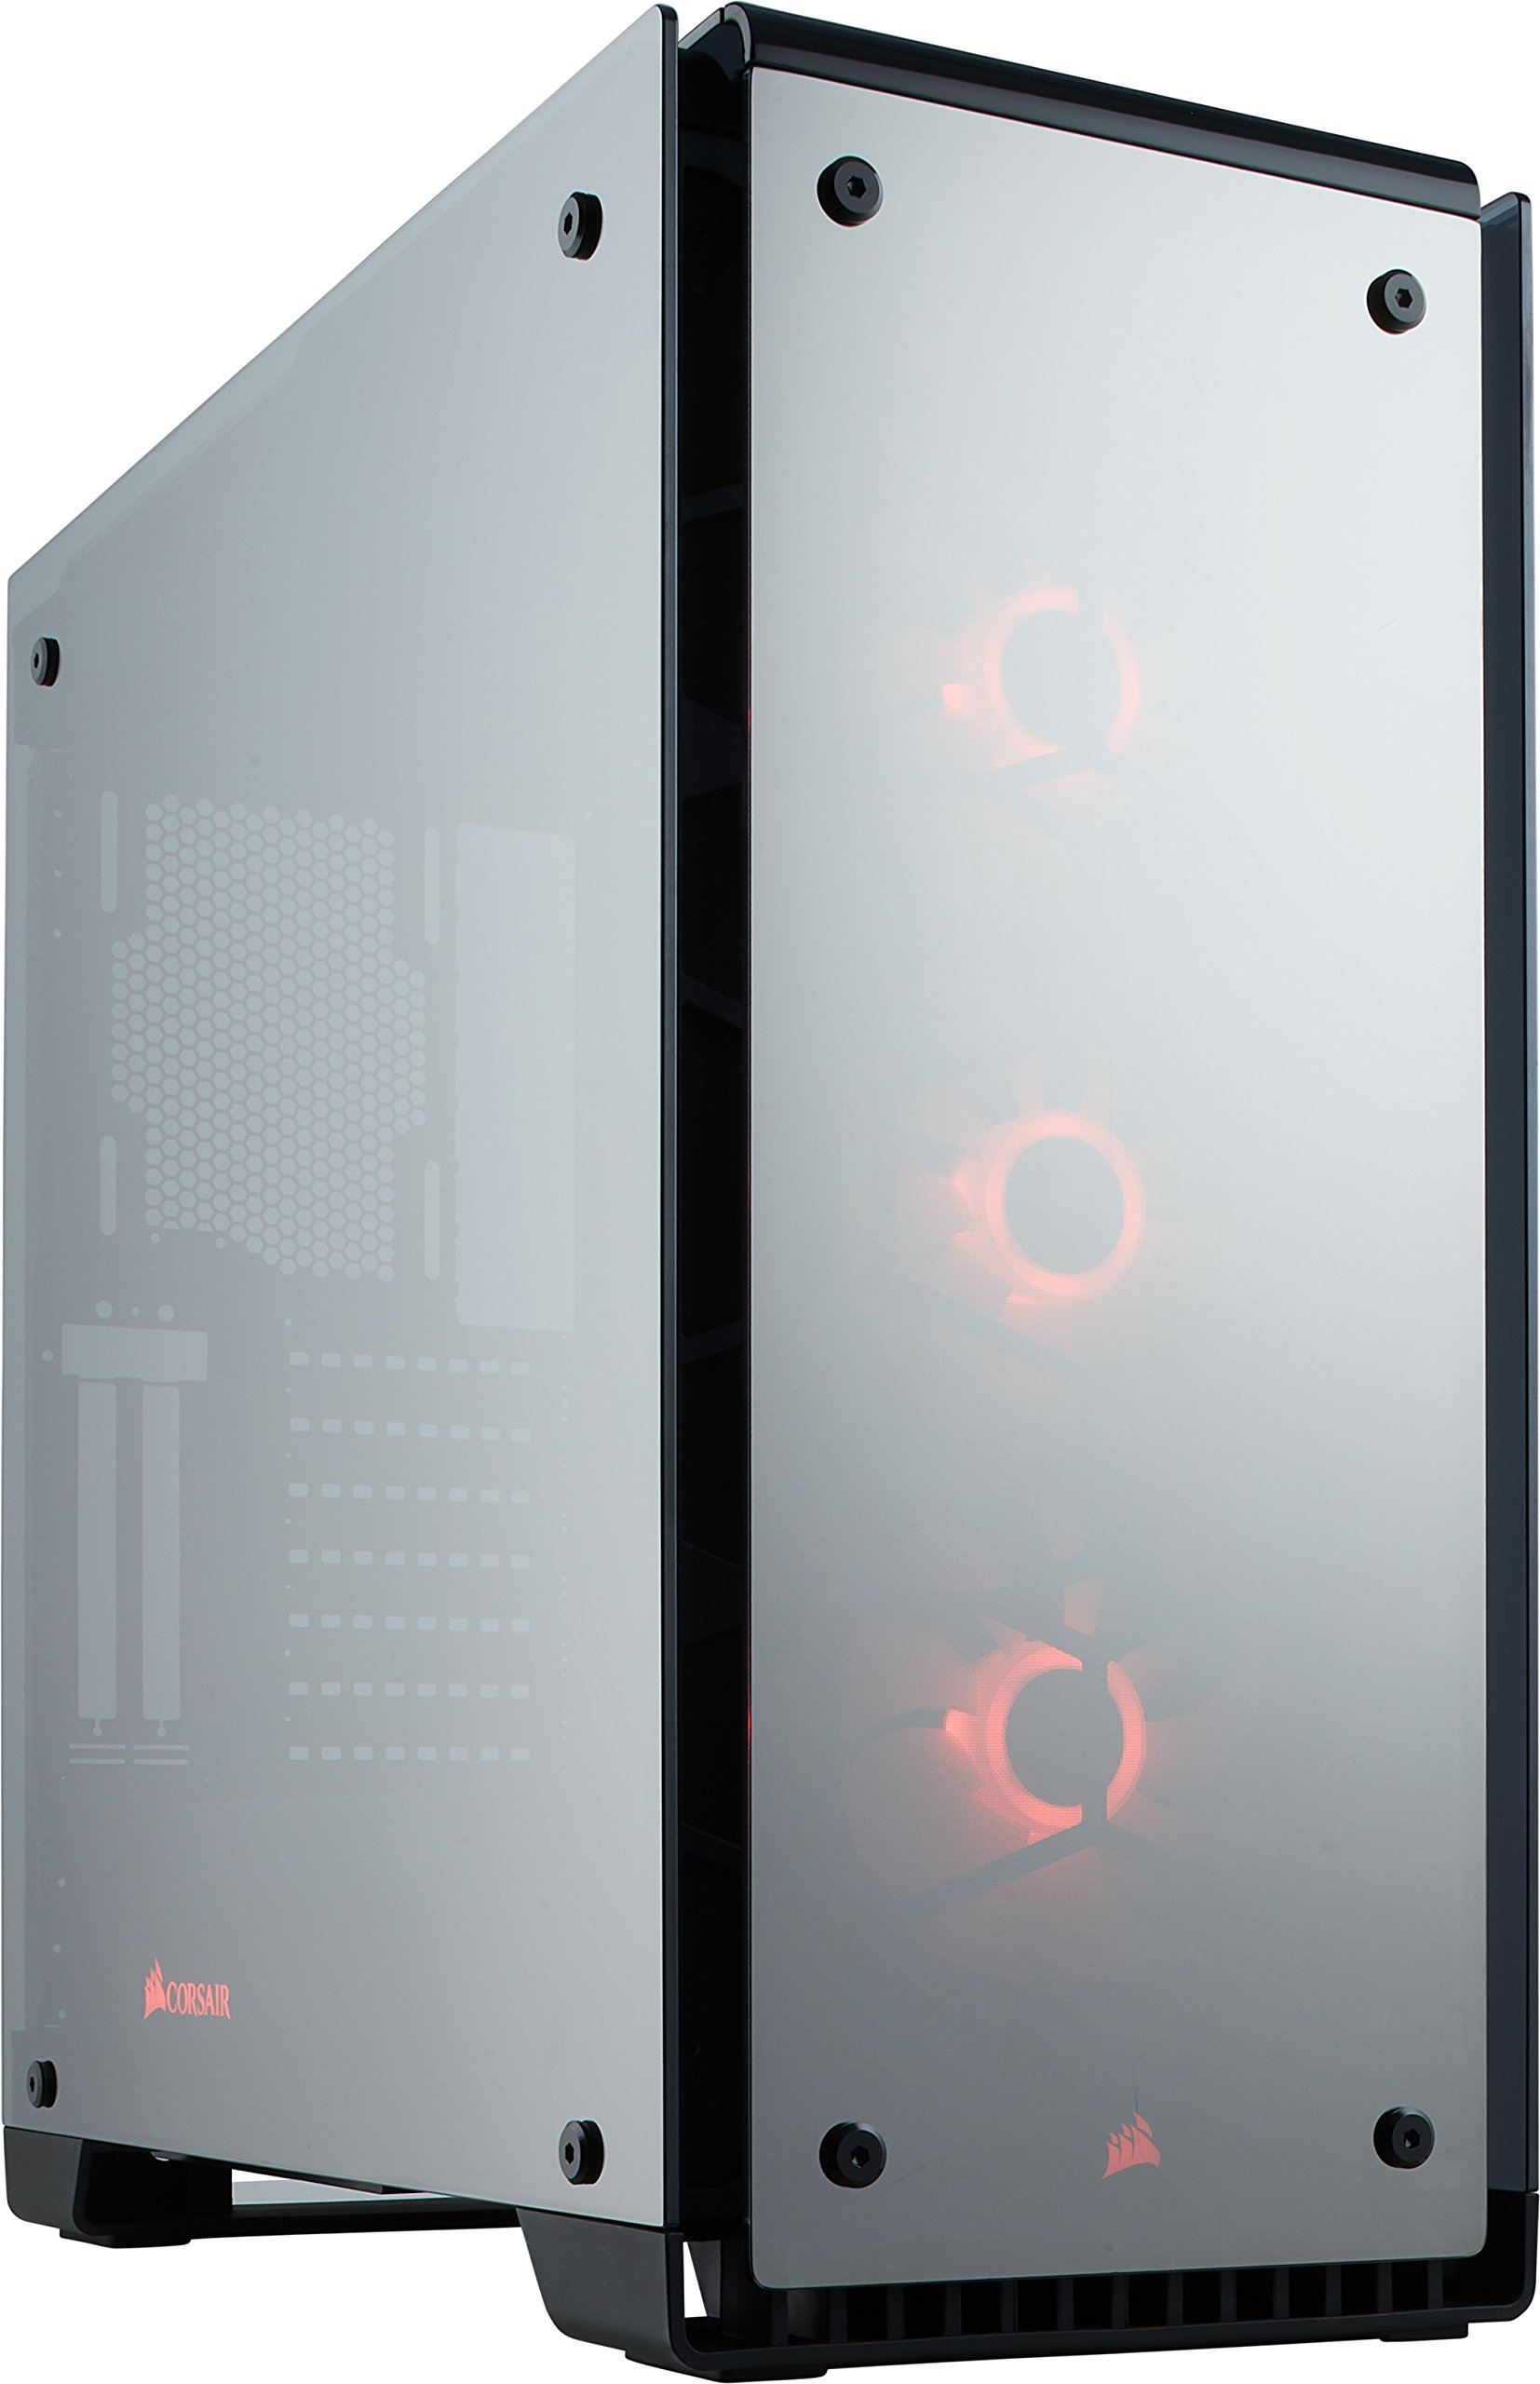 Corsair Crystal Series 570X RGB Mirror Black Tempered Glass Premium ATX Mid Tower Case (CC-9011126-WW)